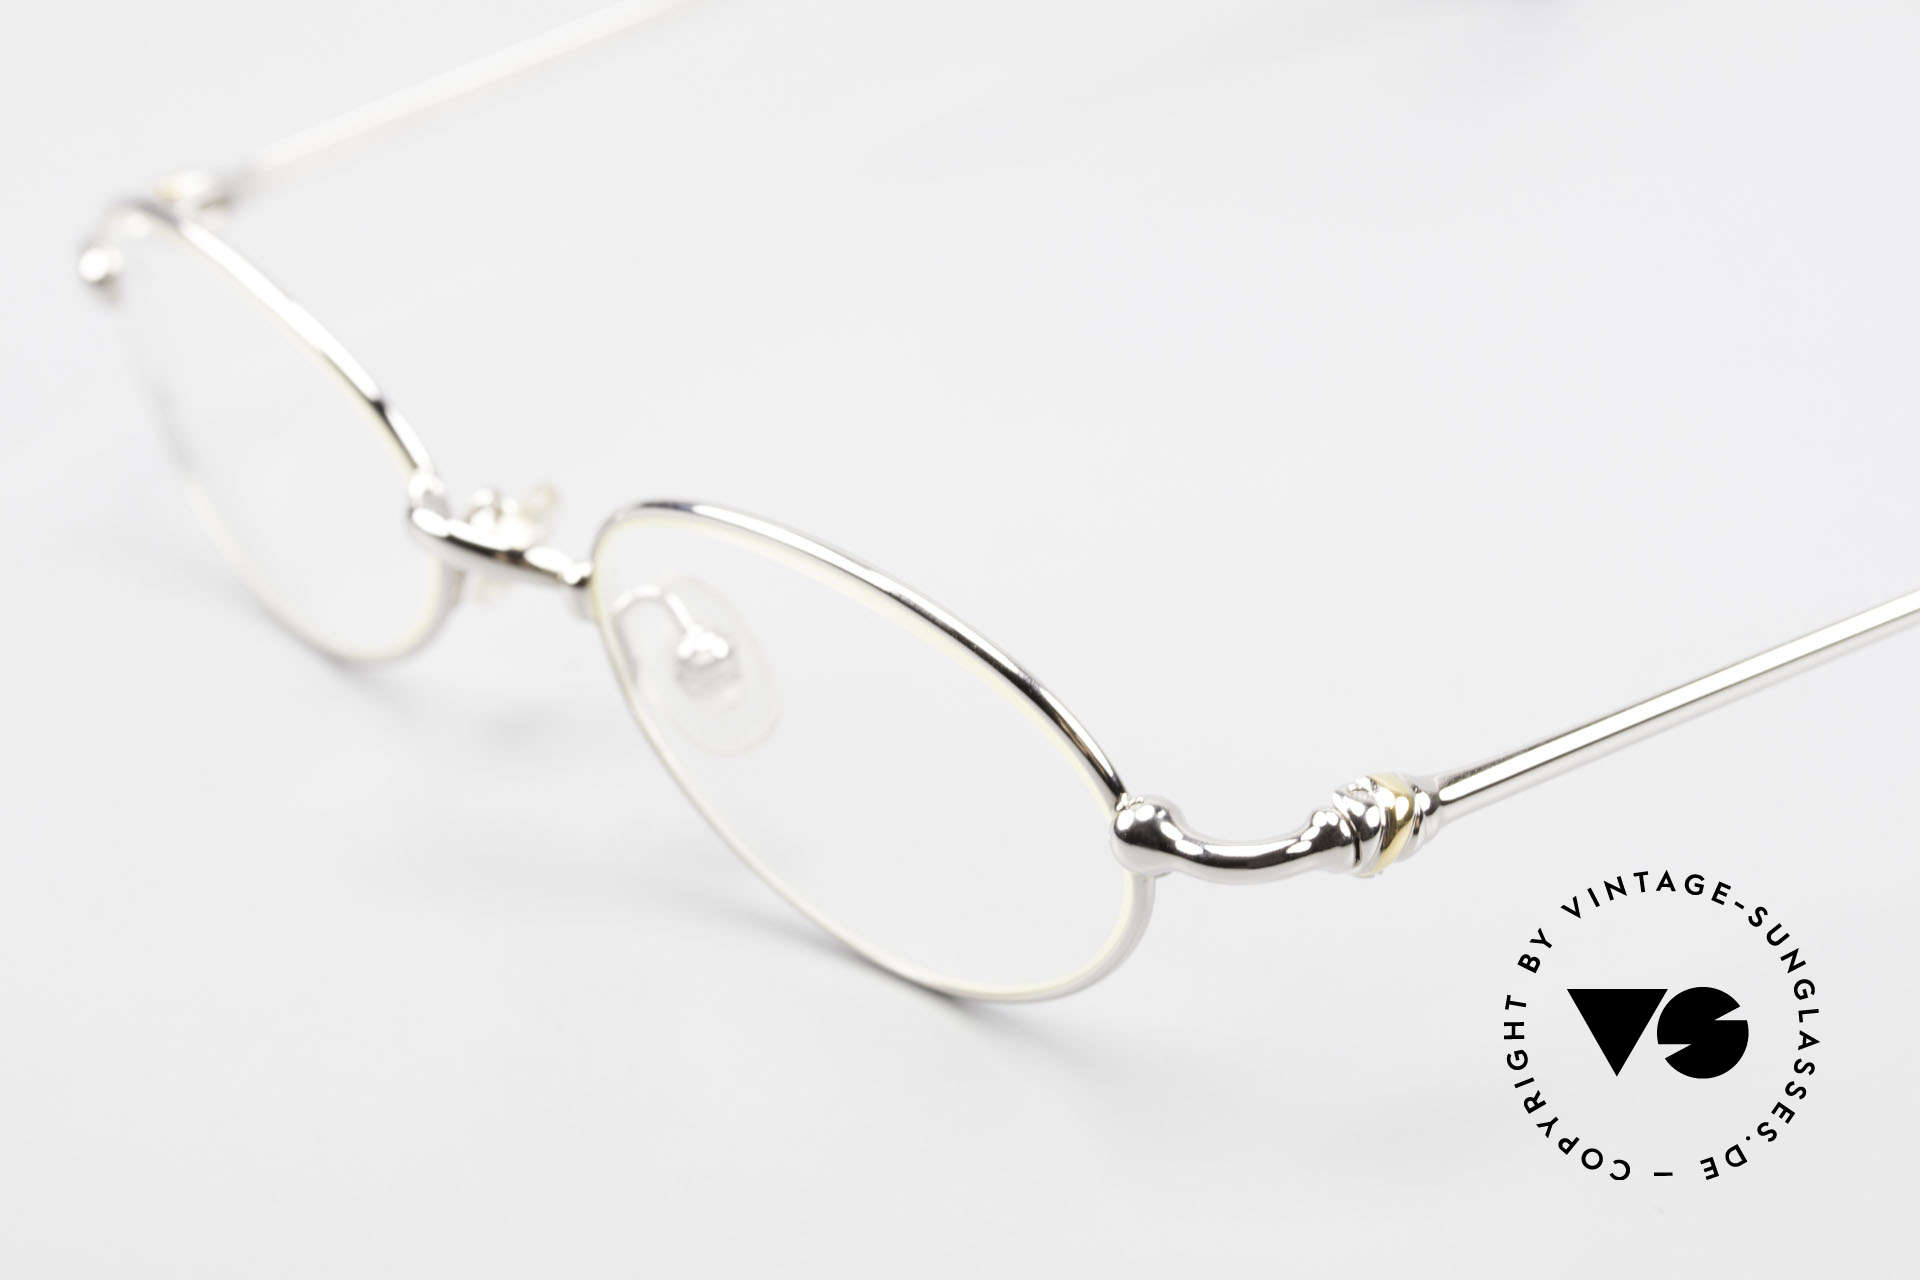 Cartier Mizar Oval Frame Luxury Platinum, unworn luxury frame comes with a CHANEL hard case, Made for Men and Women